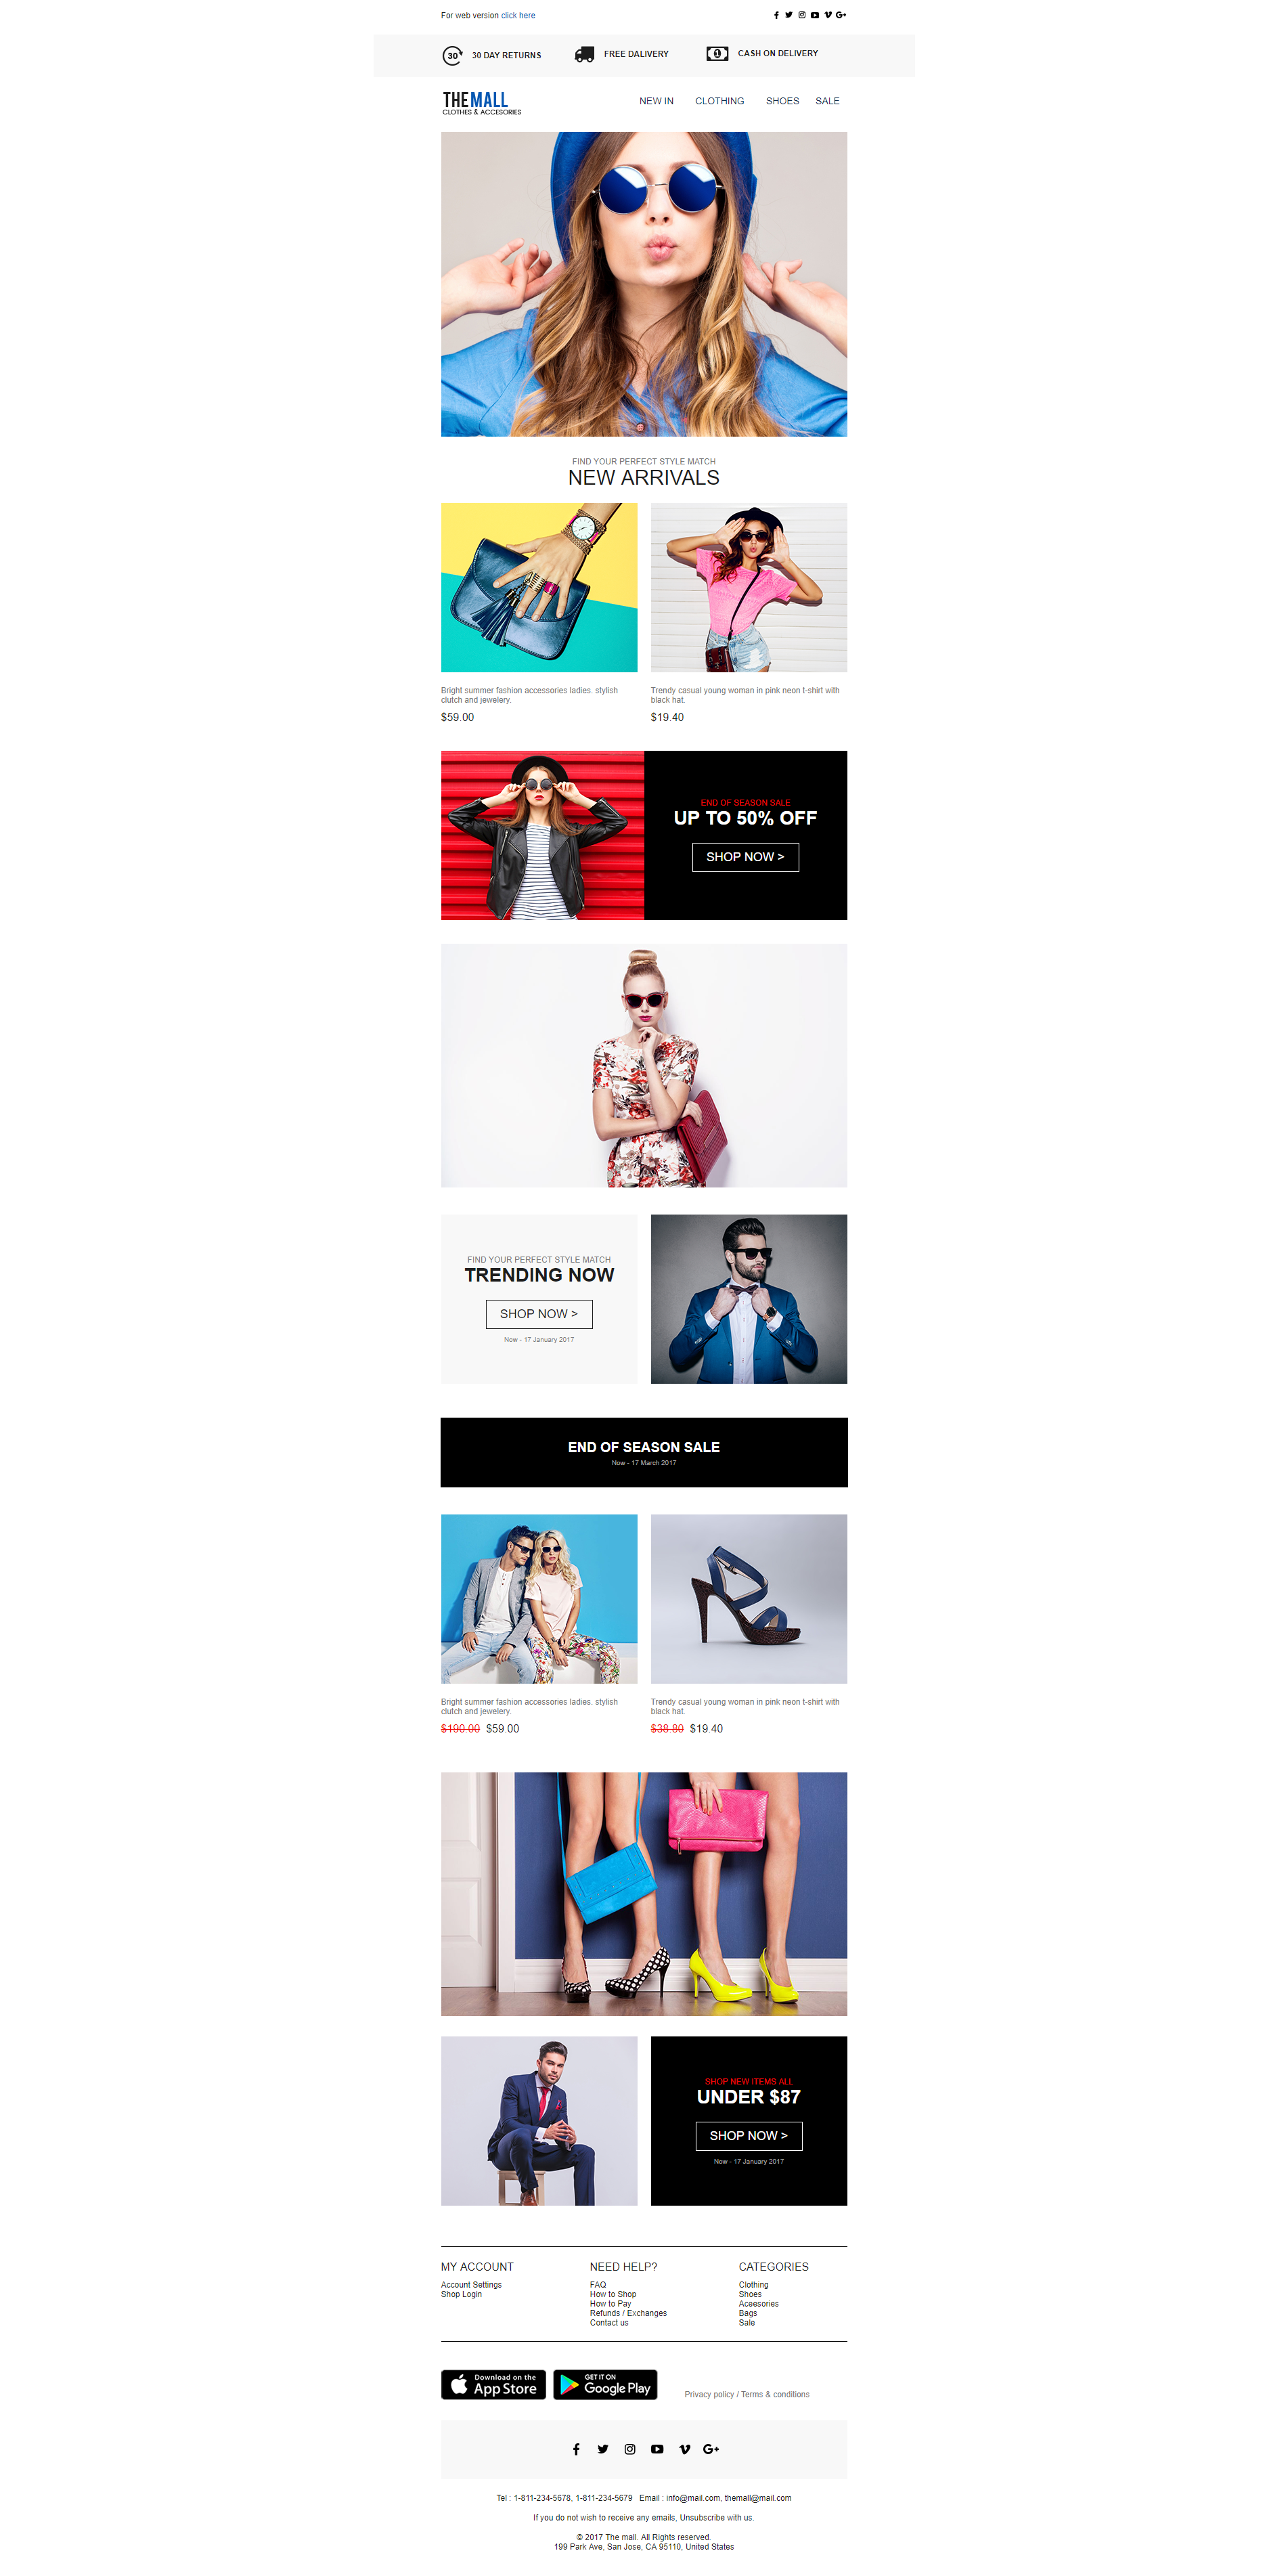 Randyjohnso i will design editable responsive html email template responsive ecommerce shopping email template fiverr newsletter marketting spiritdancerdesigns Gallery